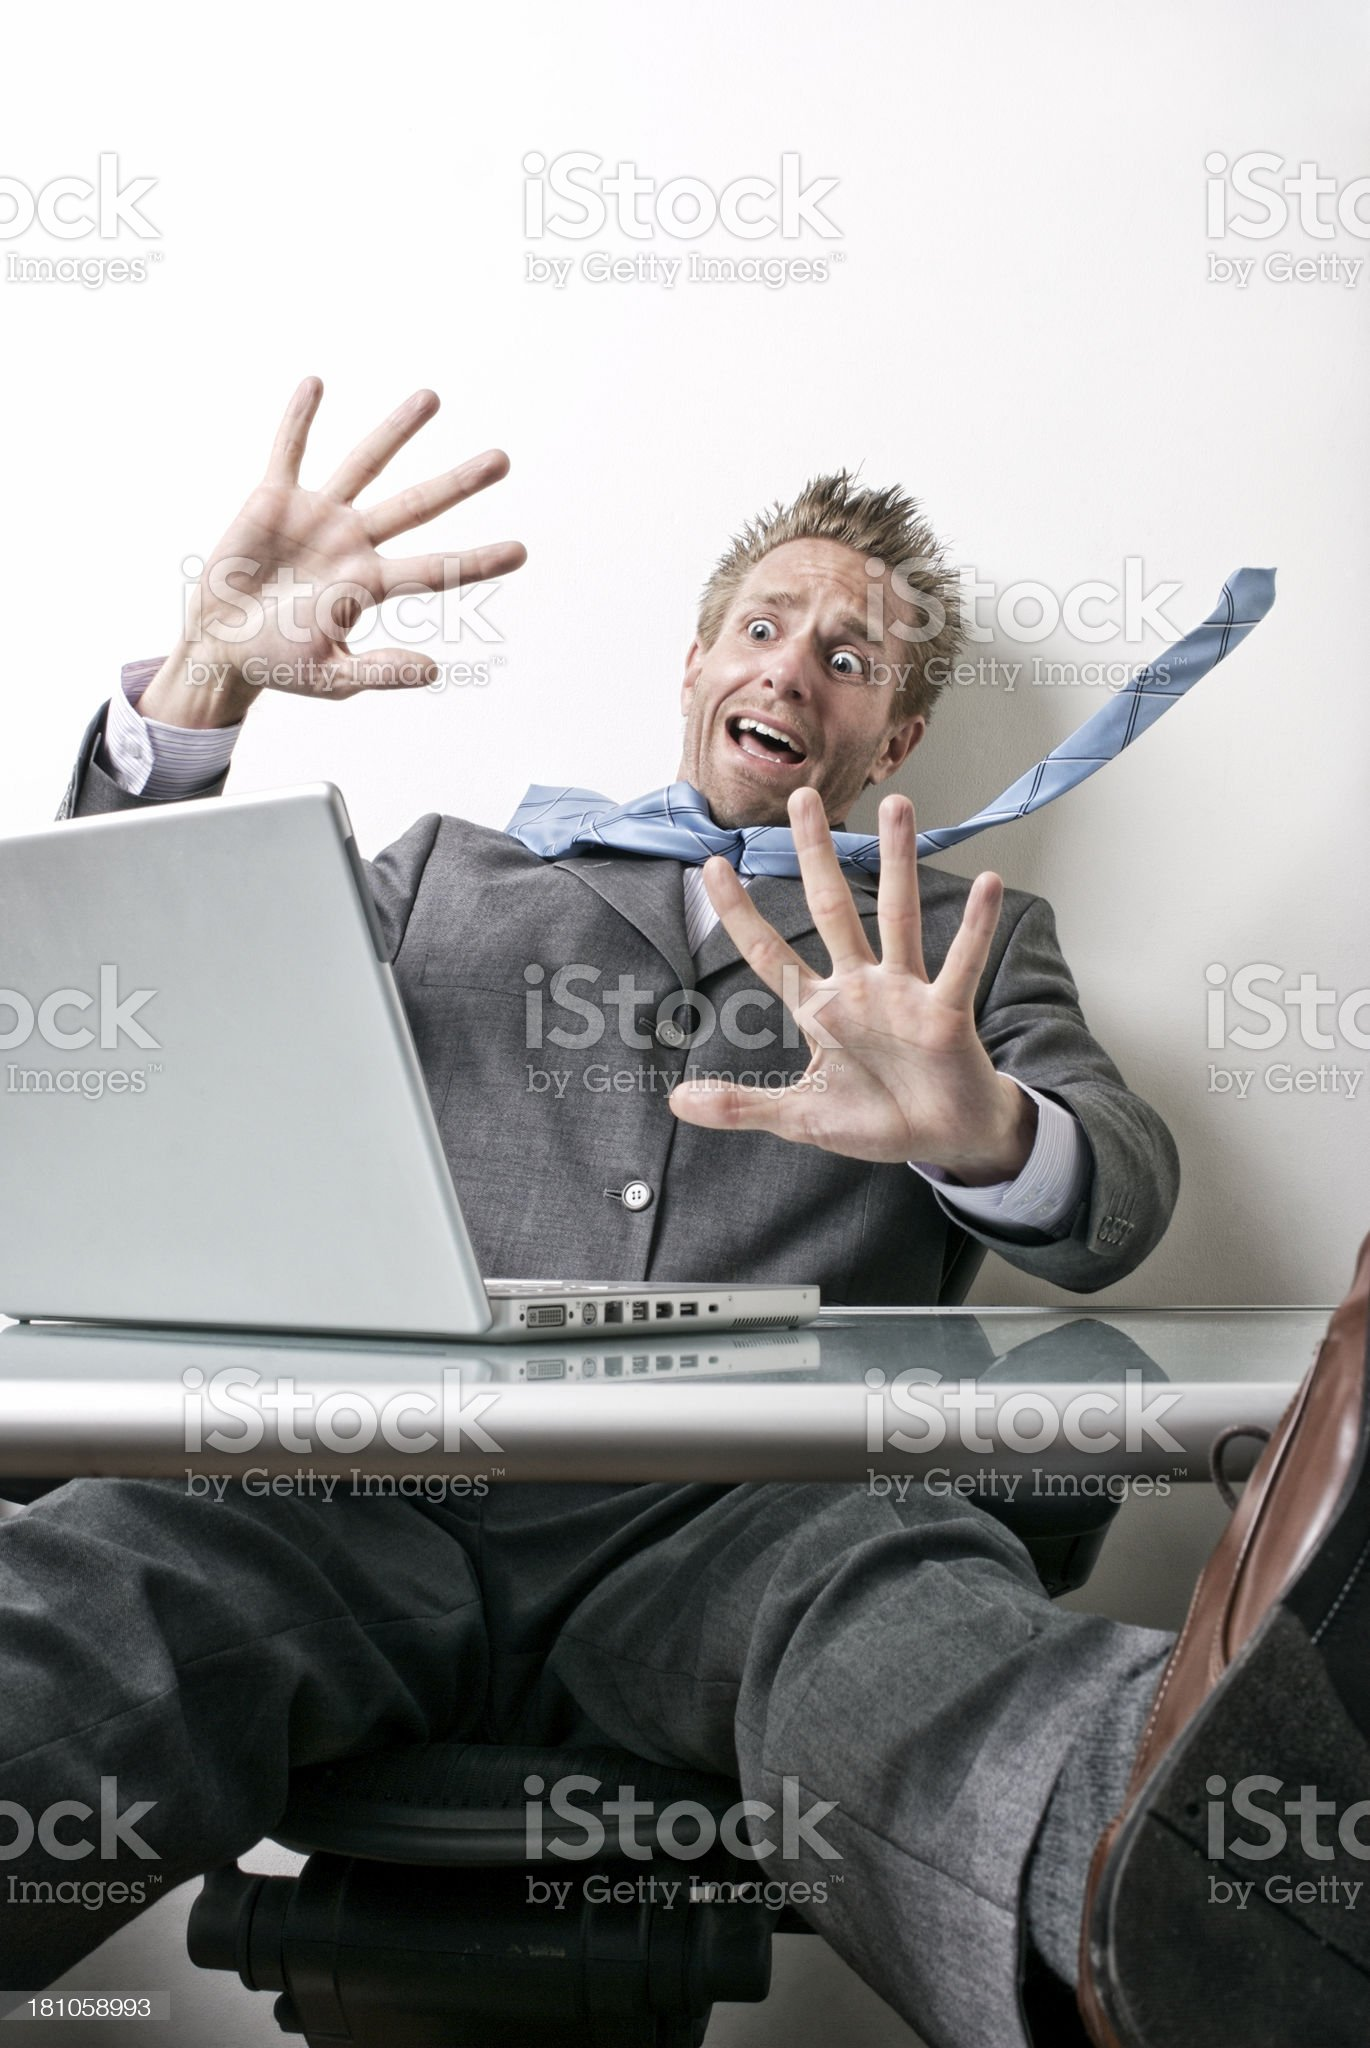 Shocked Businessman Looks Surprised at Laptop on Desk royalty-free stock photo